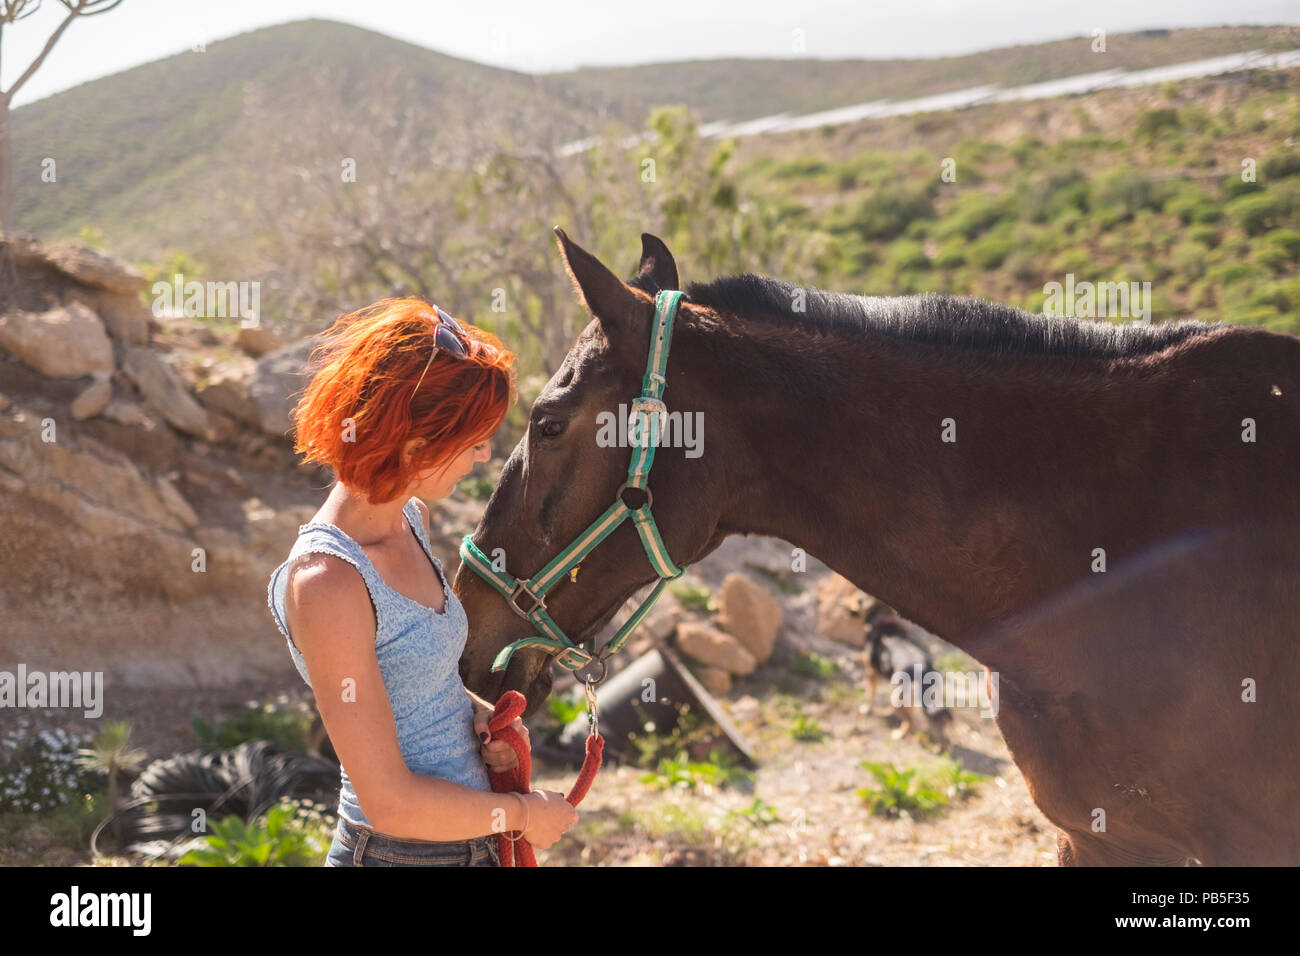 nice red hair alternative female have care of a beautiful horse ready to ride and travel together and discover amazing places. friendship and animal t - Stock Image